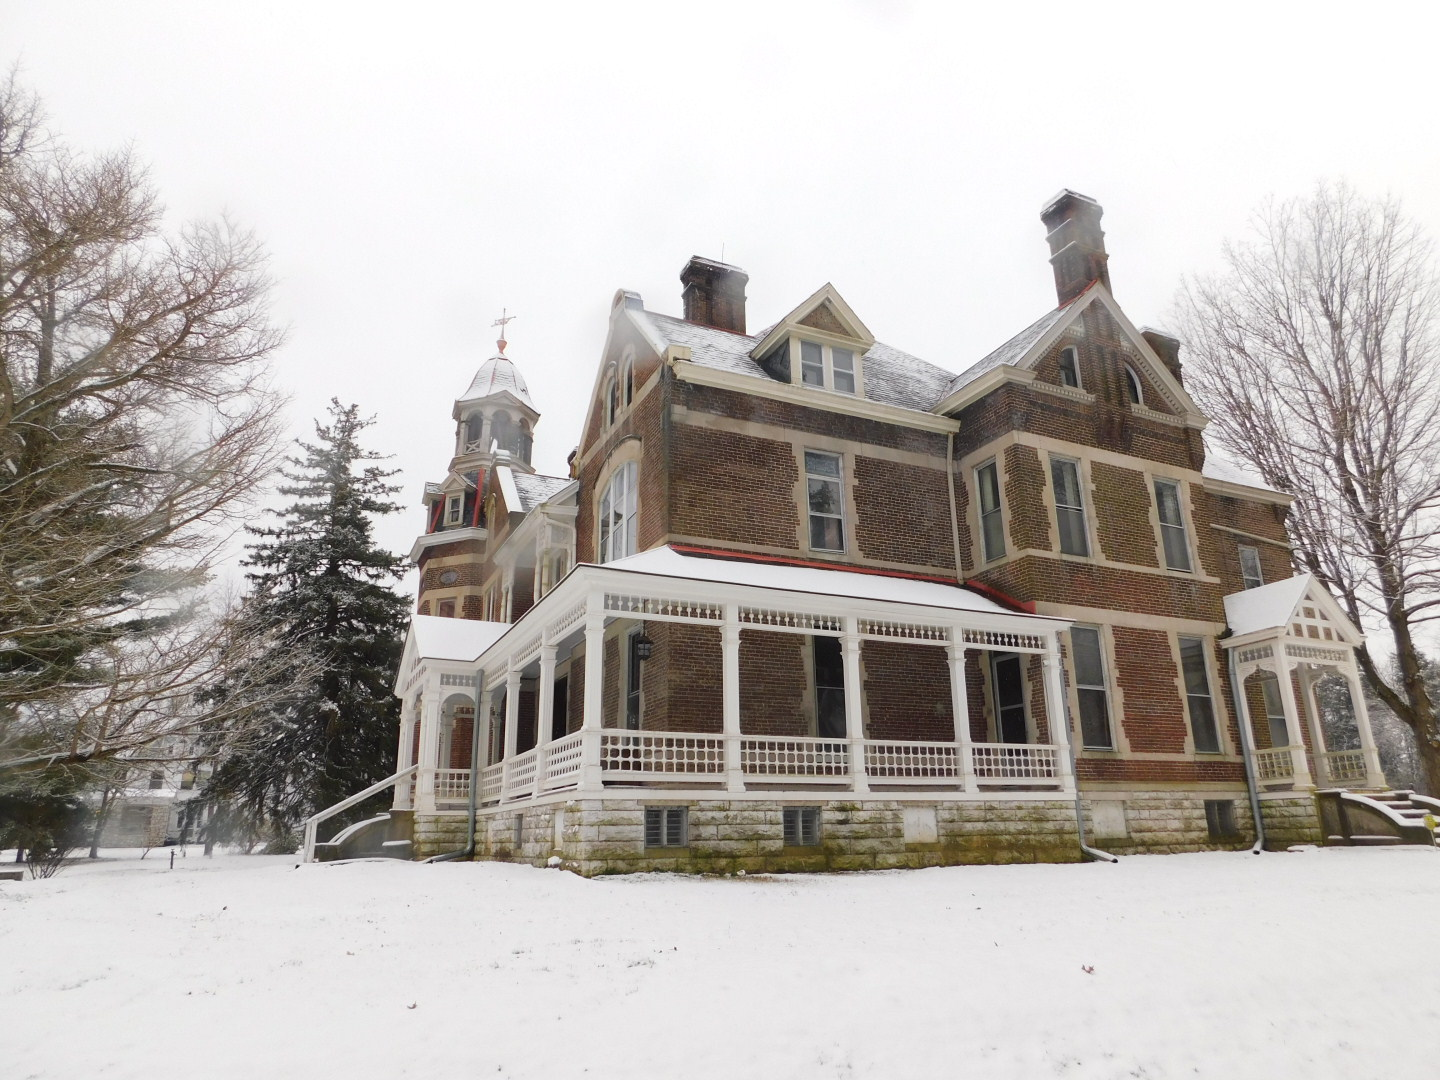 Ripy Snow - Bourbon Sessions at the Ripy Mansion